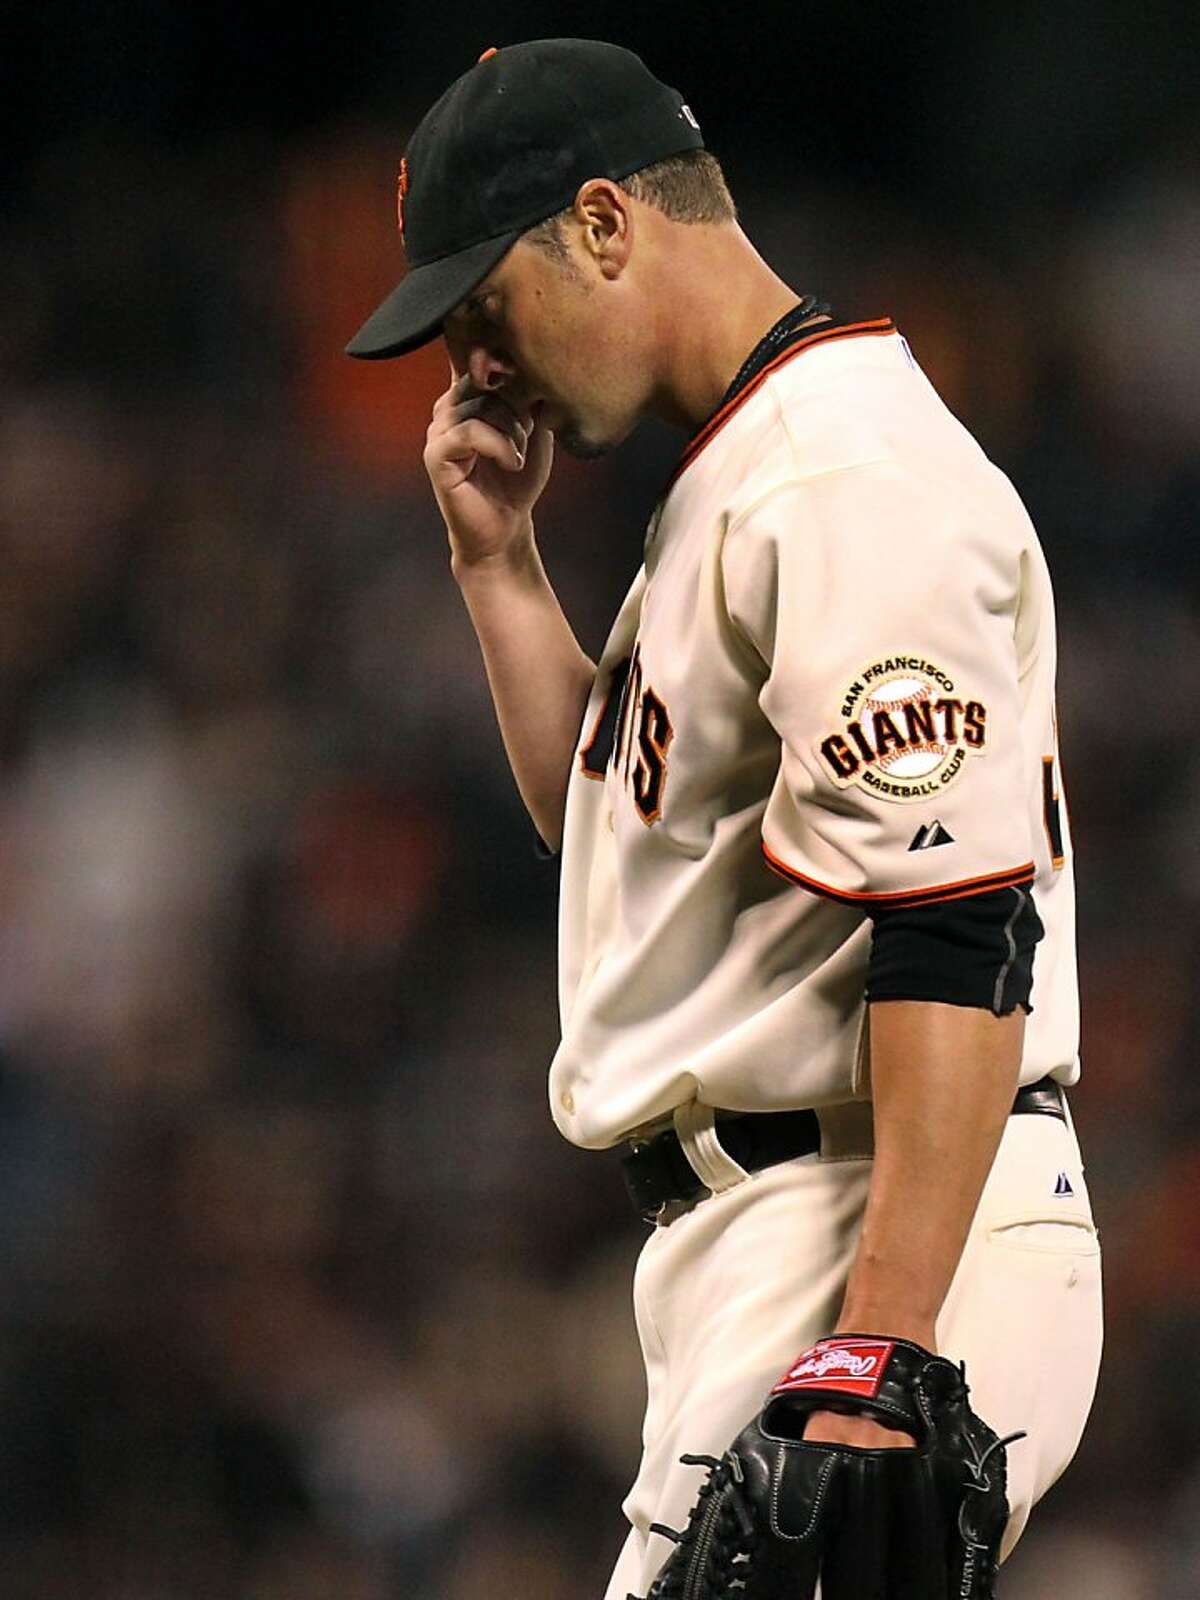 San Francisco Giants starting pitcher Ryan Vogelsong steps off the pitchers mound after being relieved in the 5th inning of their MLB baseball game with the Atlanta Braves Thursday, May 9, 2013 in San Francisco, Calif.